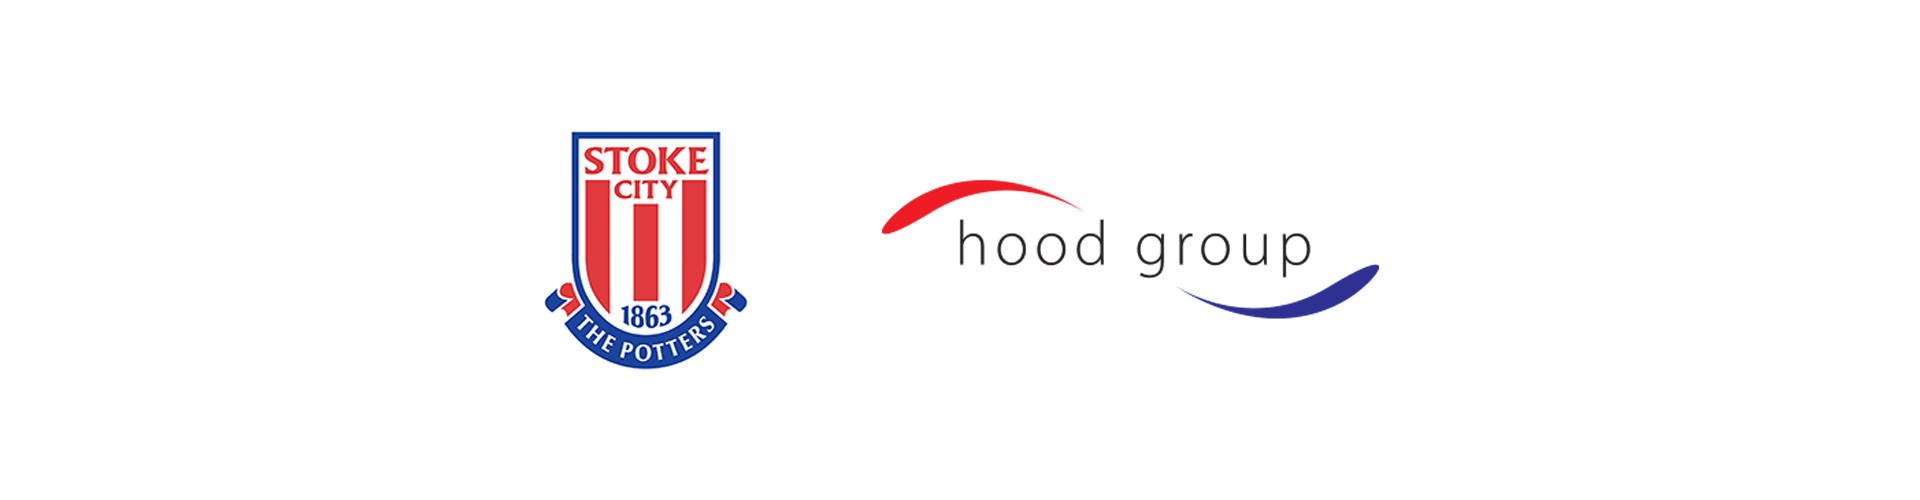 Hood Group partners with Stoke City FC